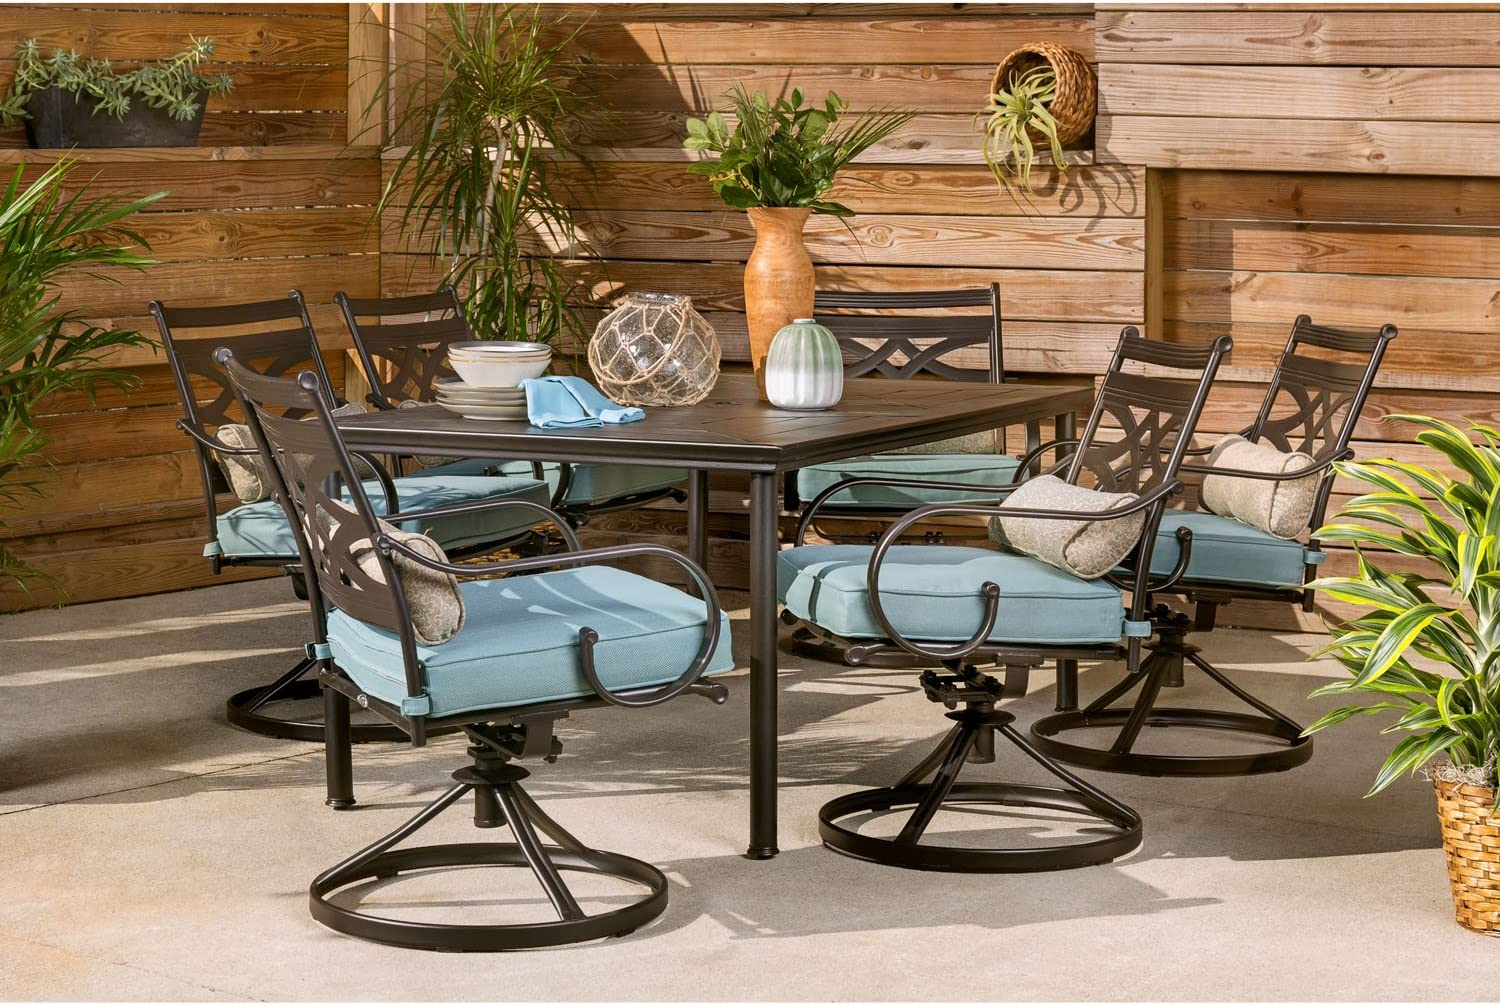 Amazon Com Hanover Montclair 7 Piece All Weather Outdoor Patio Dining Set 6 Swivel Rocker Chairs With Comfortable Blue Seat And Lumbar Cushions 40 X66 Stamped Rectangle Table Mclrdn7pcsqsw6 Blu Garden Outdoor